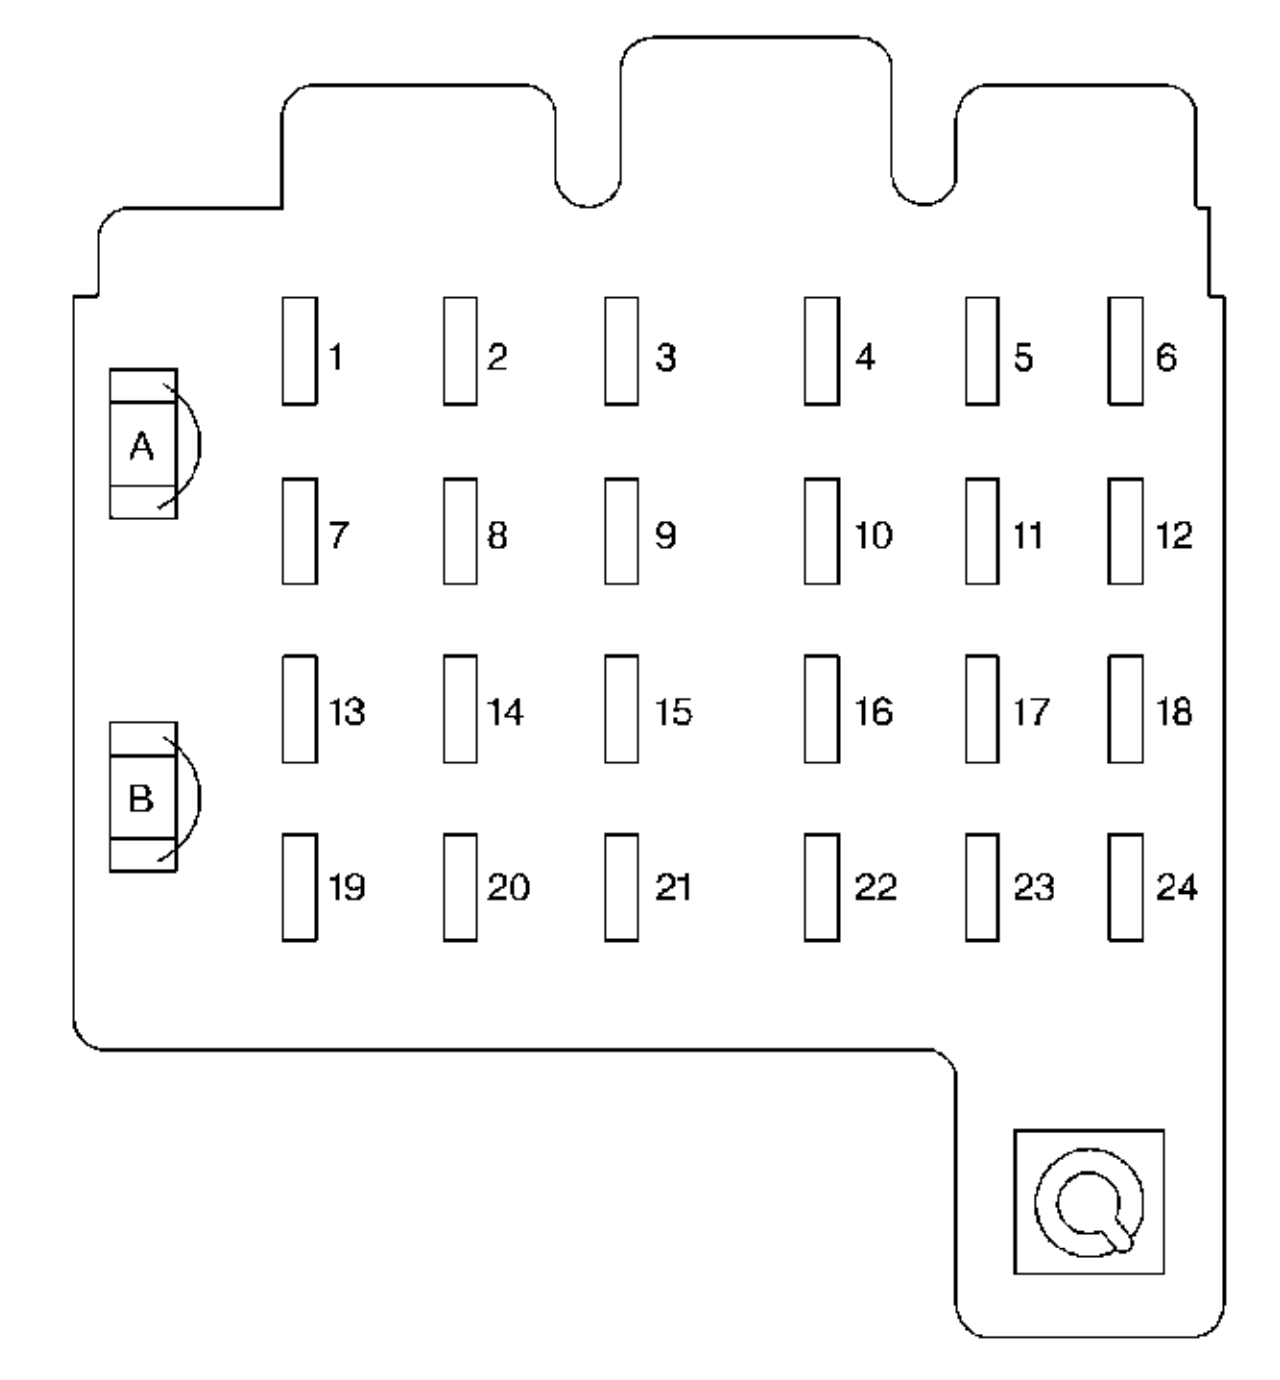 1999 Chevy Tahoe Fuse Box Diagram - Wiring Diagram Data SCHEMA on 2005 tahoe wiring diagram, 2003 chevy tahoe door parts diagram, 1999 tahoe speaker wiring diagram, 99 chevy tahoe sub box, 99 chevy tahoe exhaust, 99 chevy tahoe motor, 99 chevy tahoe brake system, 99 chevy tahoe flywheel, 99 chevy with 3 lift, 99 chevy tahoe on rims, 2000 tahoe ls radio wiring diagram, headlight switch wiring diagram, chevy truck wiring diagram, 99 chevy tahoe fuel tank, 99 chevy tahoe plug, 99 chevy tahoe inside box with circuit board, 1997 ford truck wiring diagram, 1999 tahoe radio wiring diagram, 99 chevy tahoe brake pads, 99 chevy tahoe owner manual,